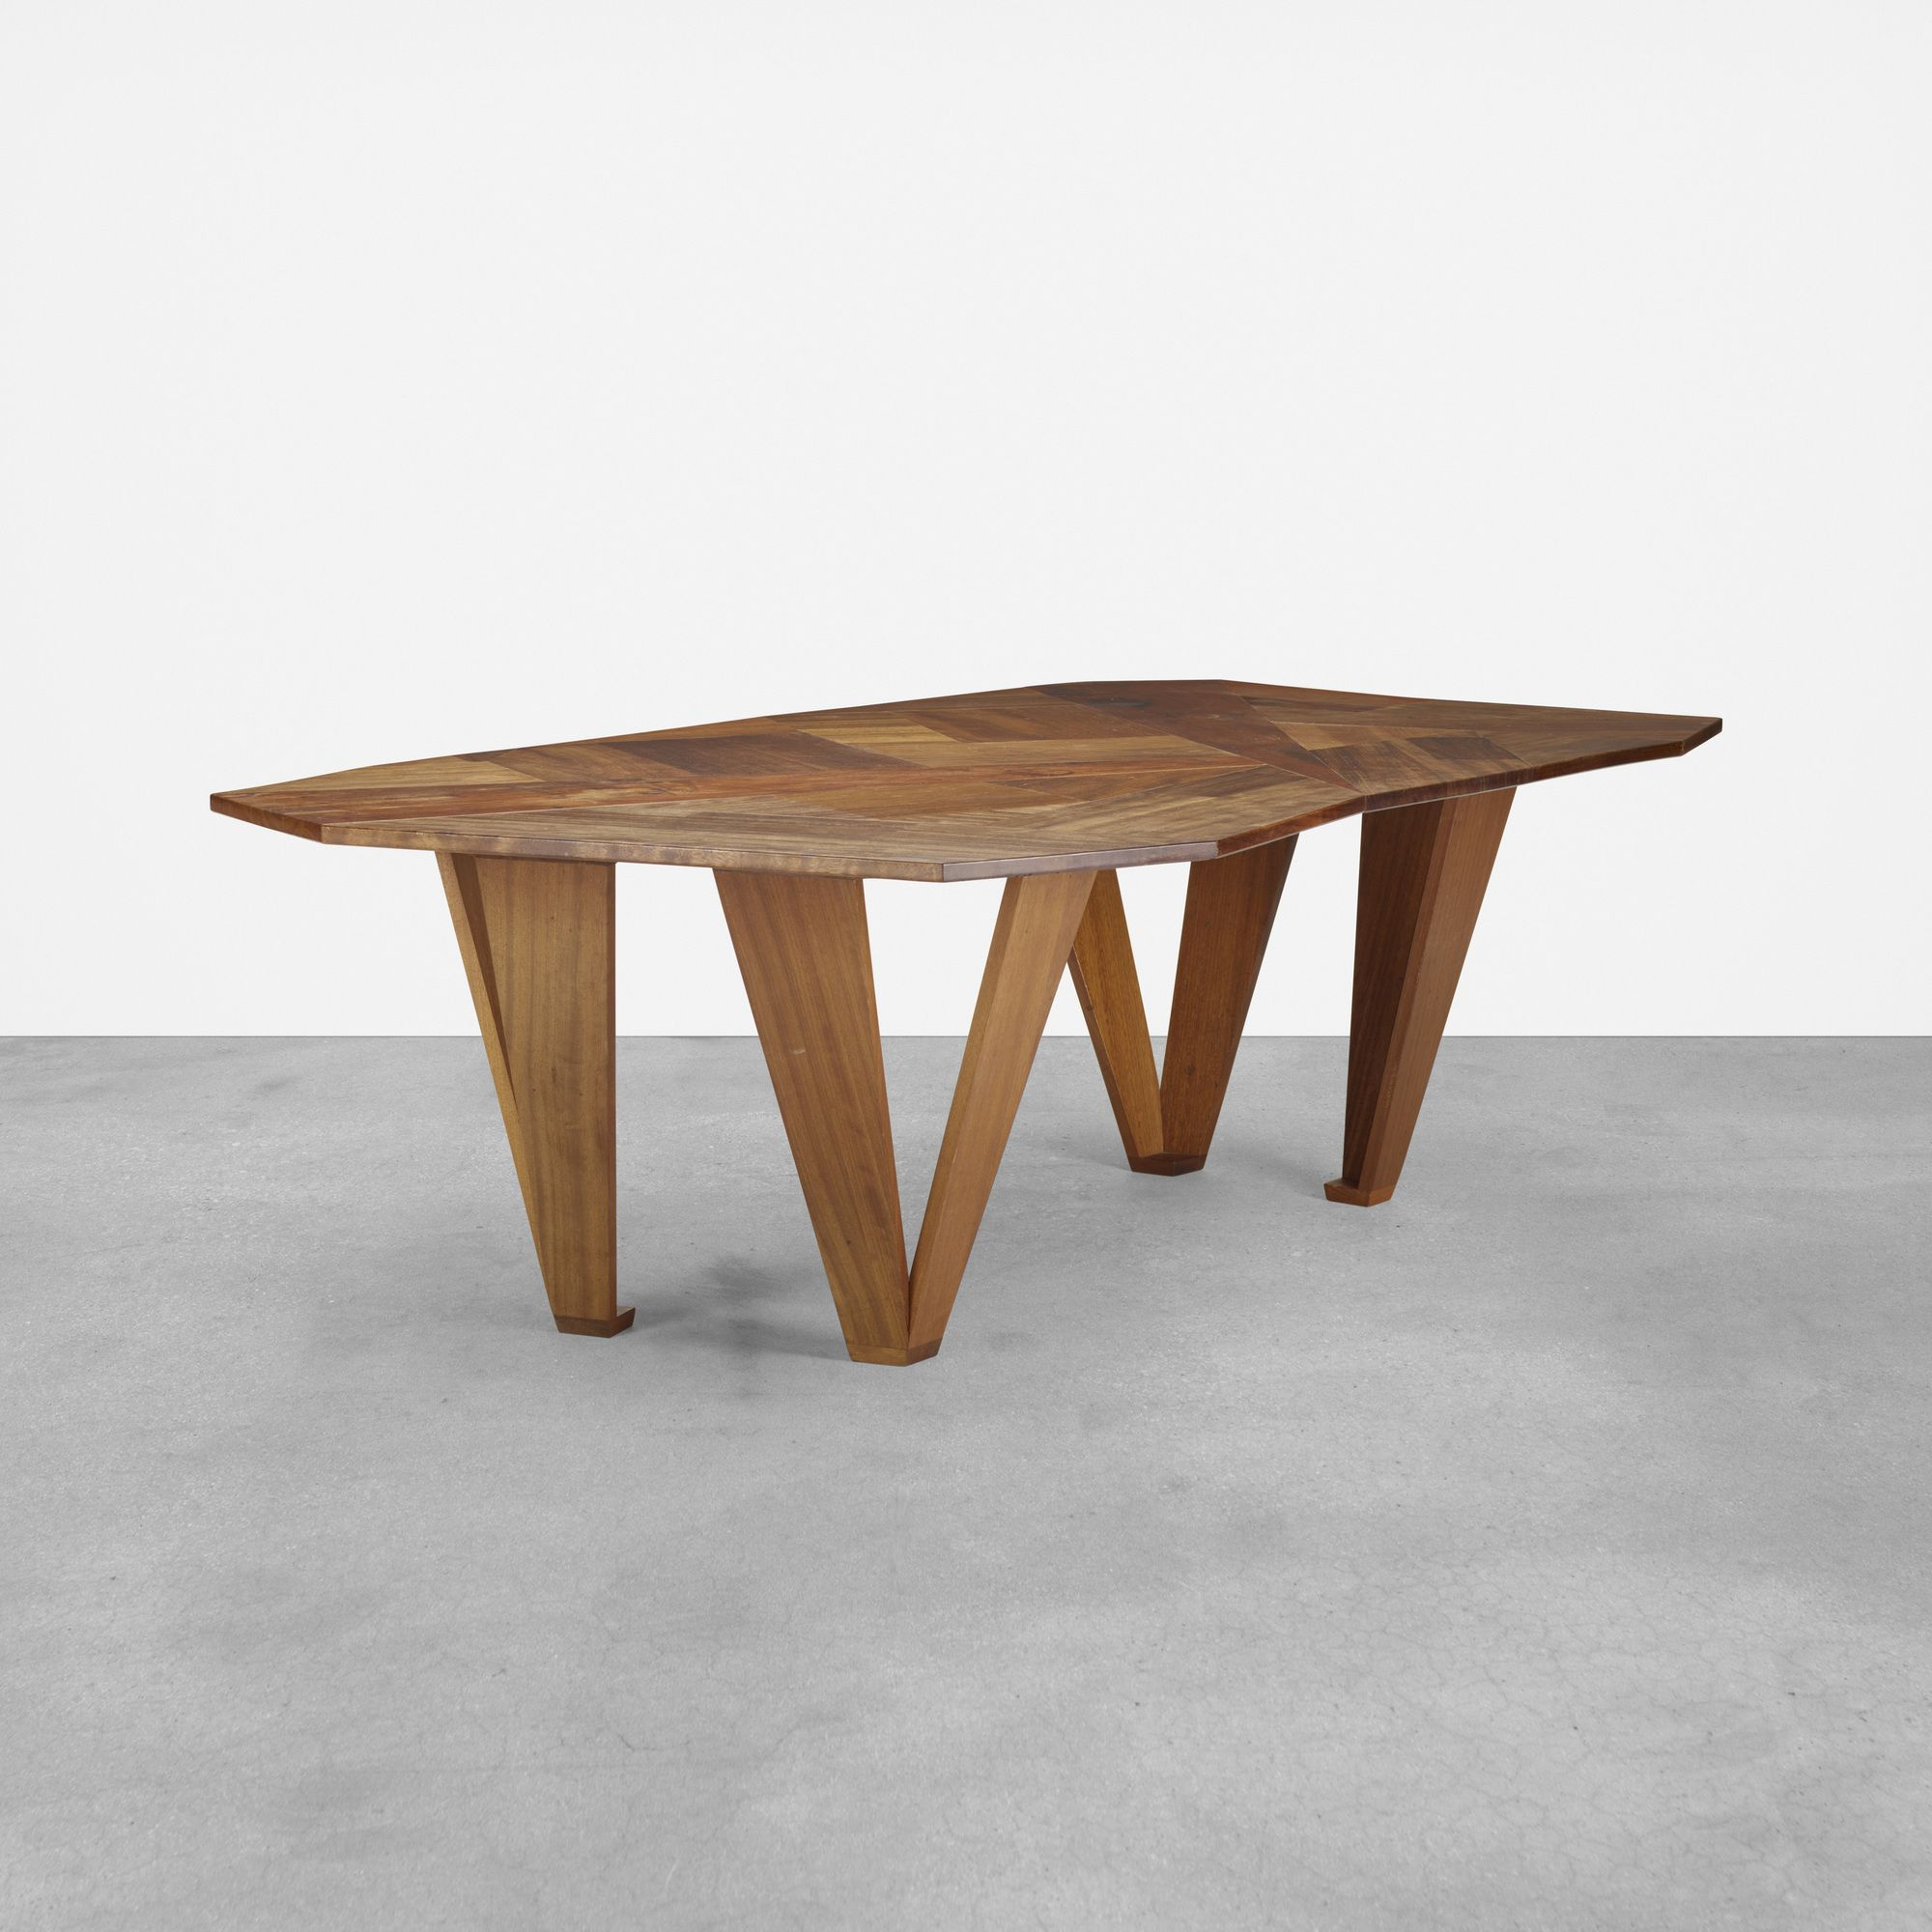 Martino Gamper. Off Cuts Dining Table. 2007, Teak (View 24 of 25)